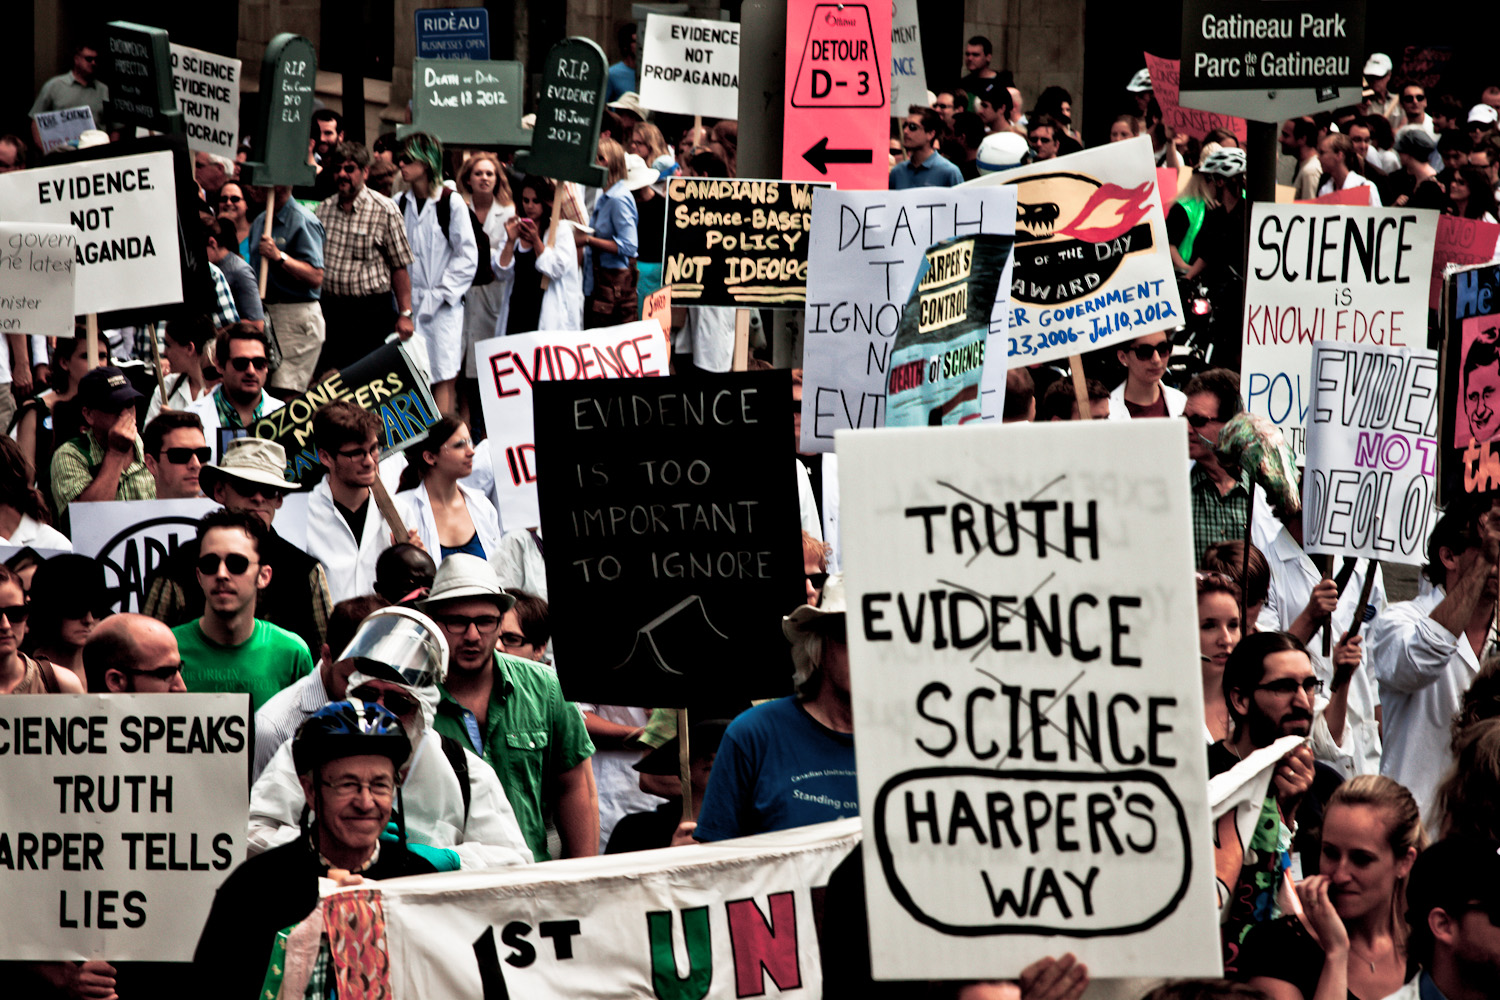 Death of Evidence protest, scilencing scientists